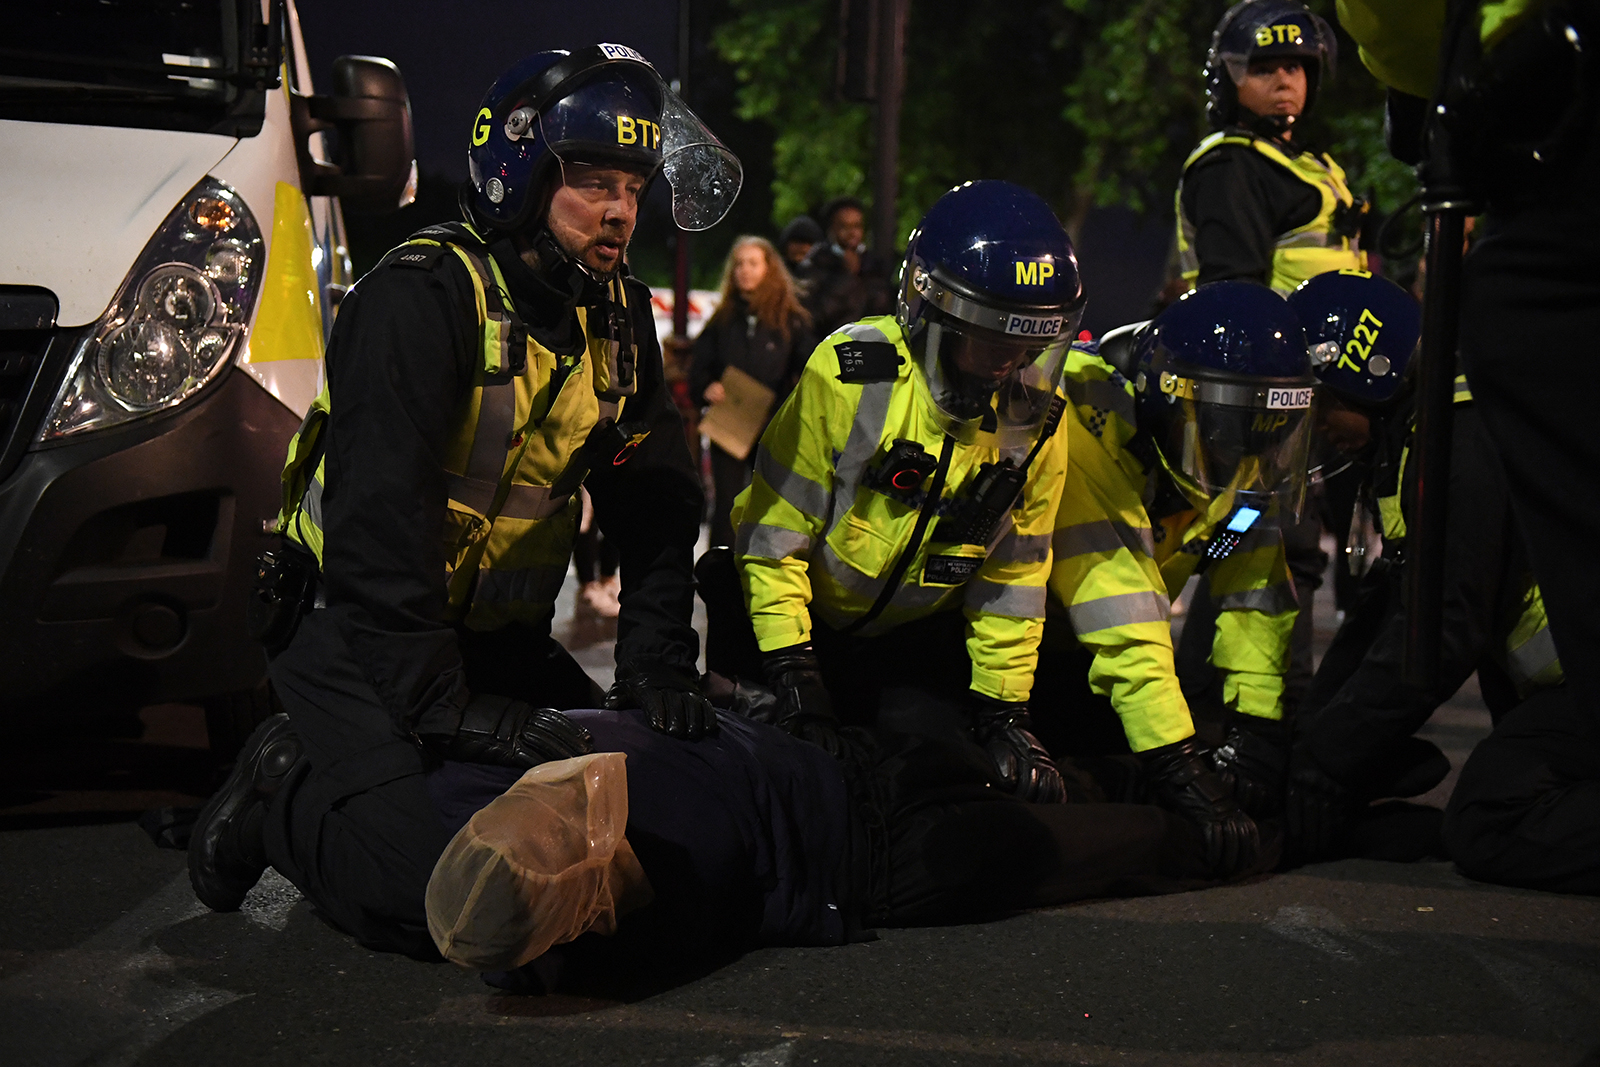 A protester is placed in a spit hood as he is restrained by officers during a Black Lives Matter protest on June 7, in London.